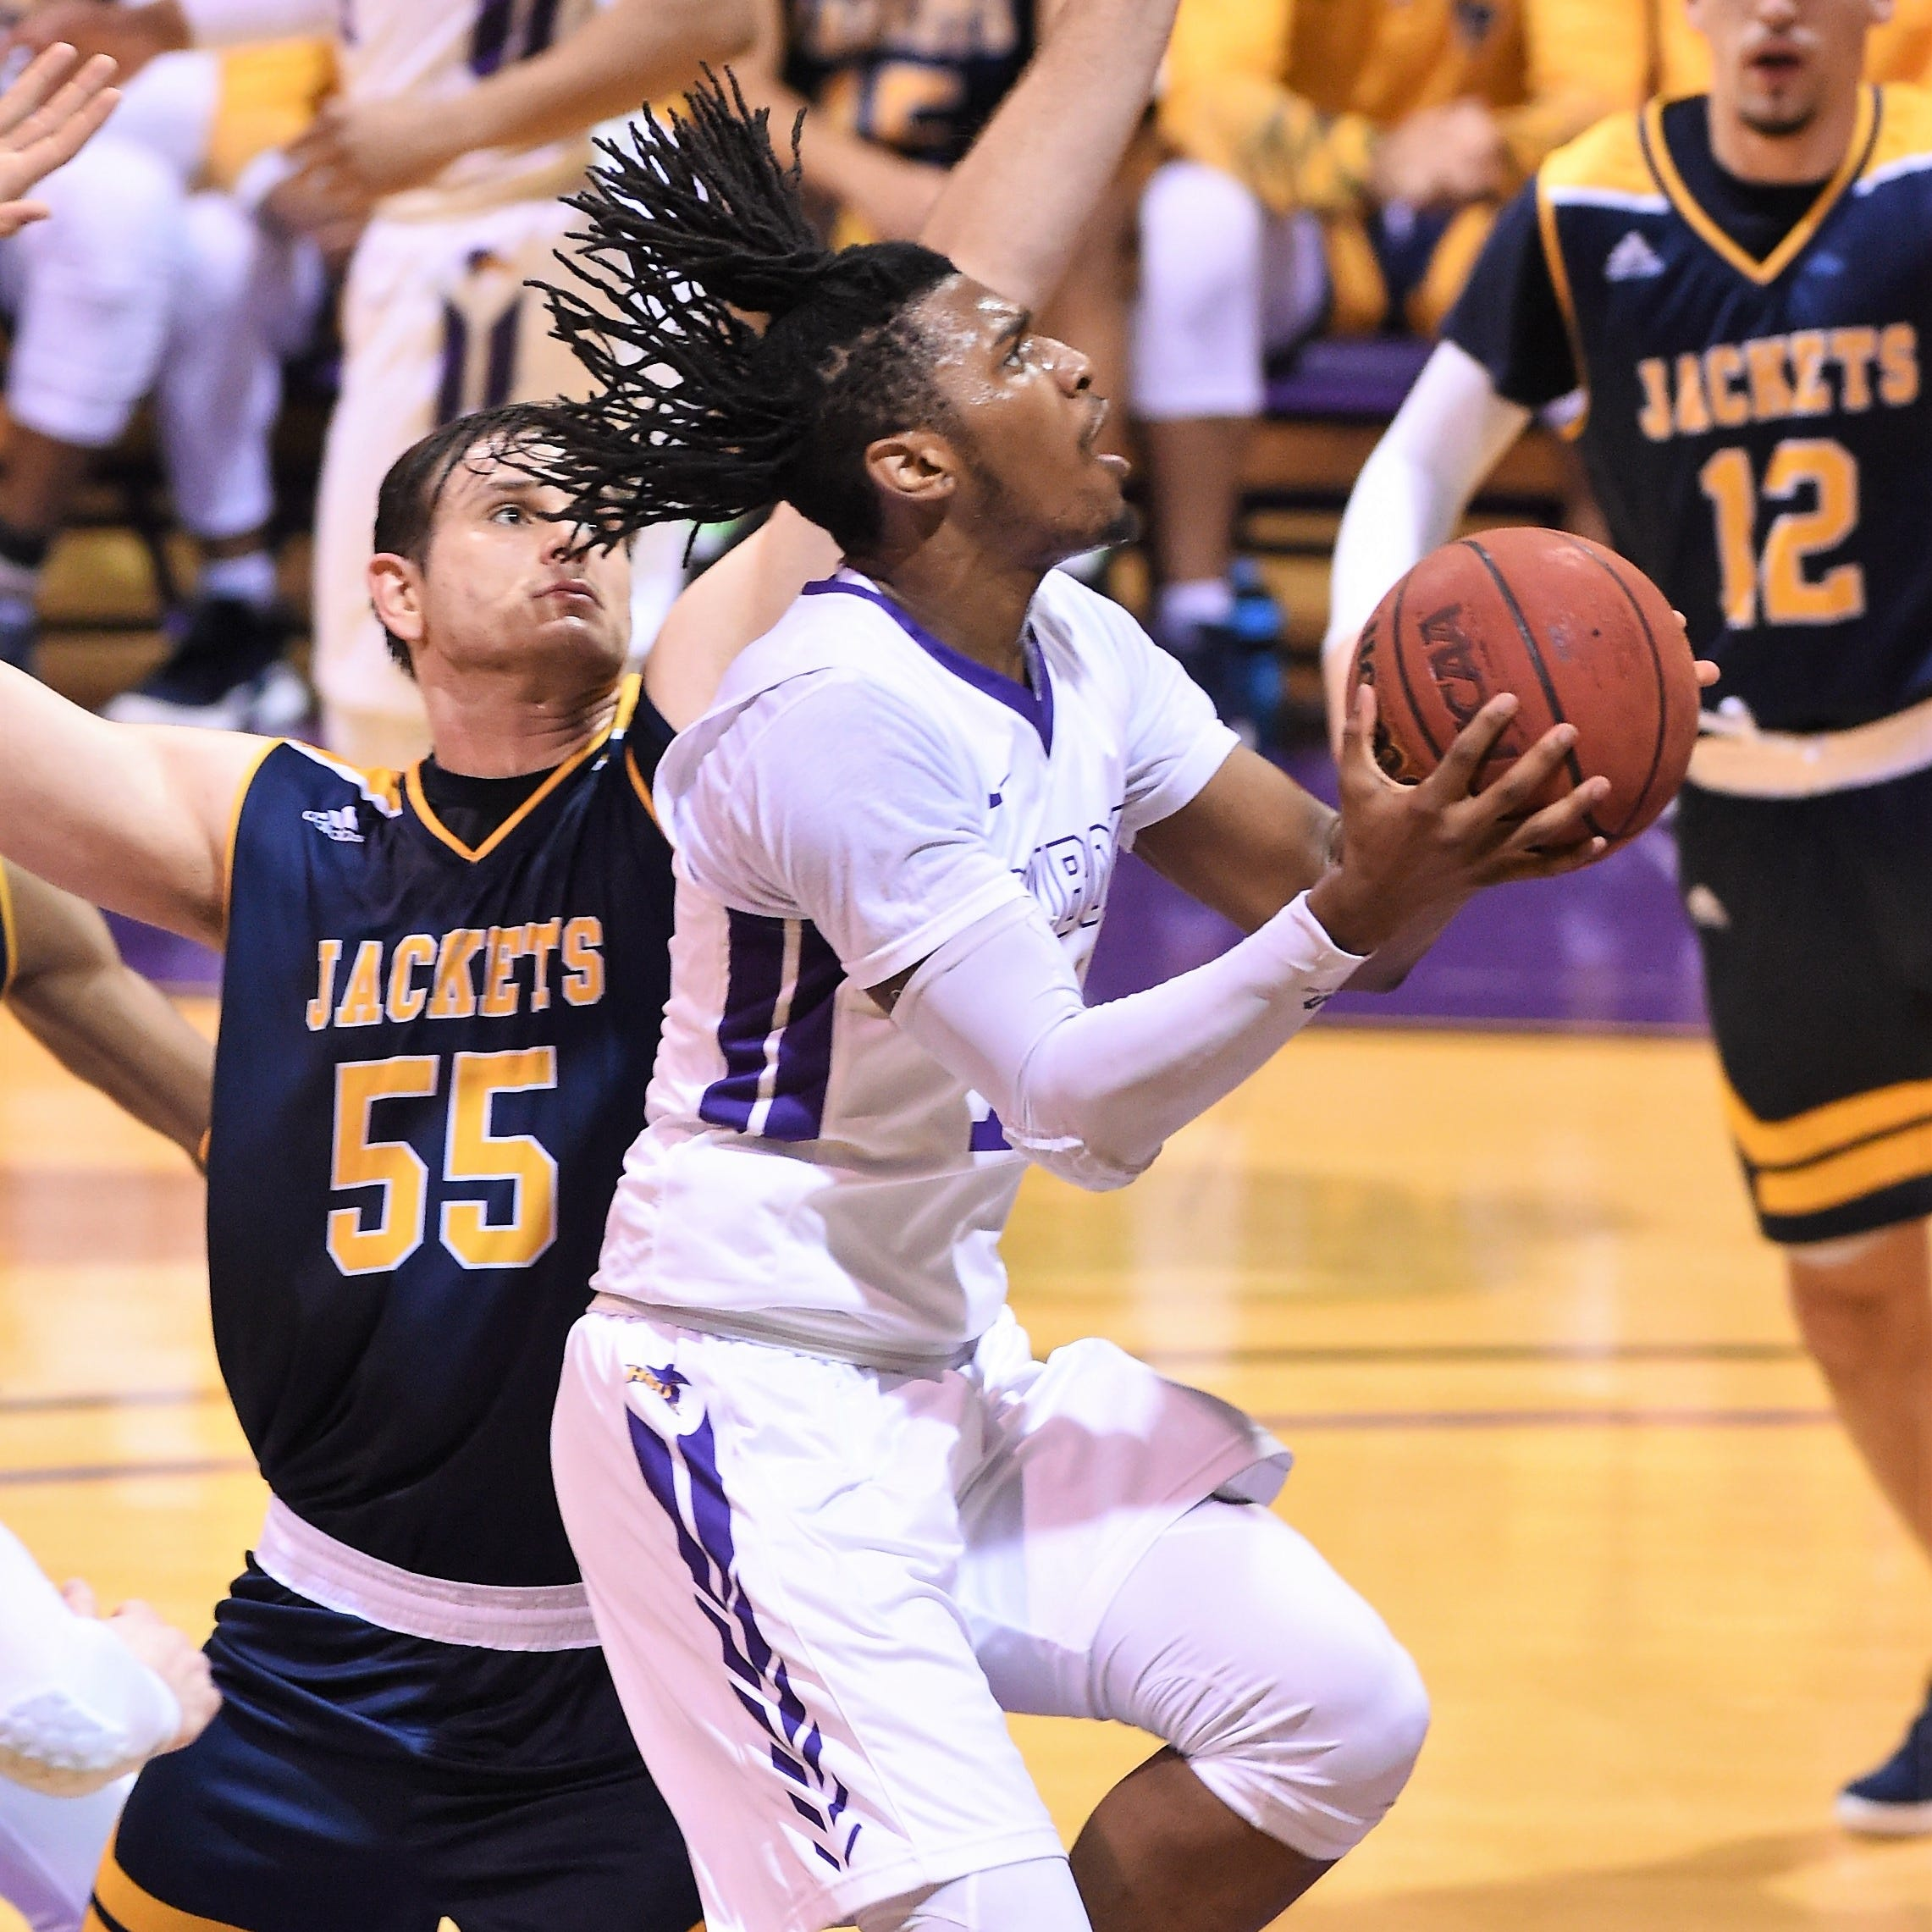 Freshman Steven Quinn already proving himself for Hardin-Simmons men's basketball